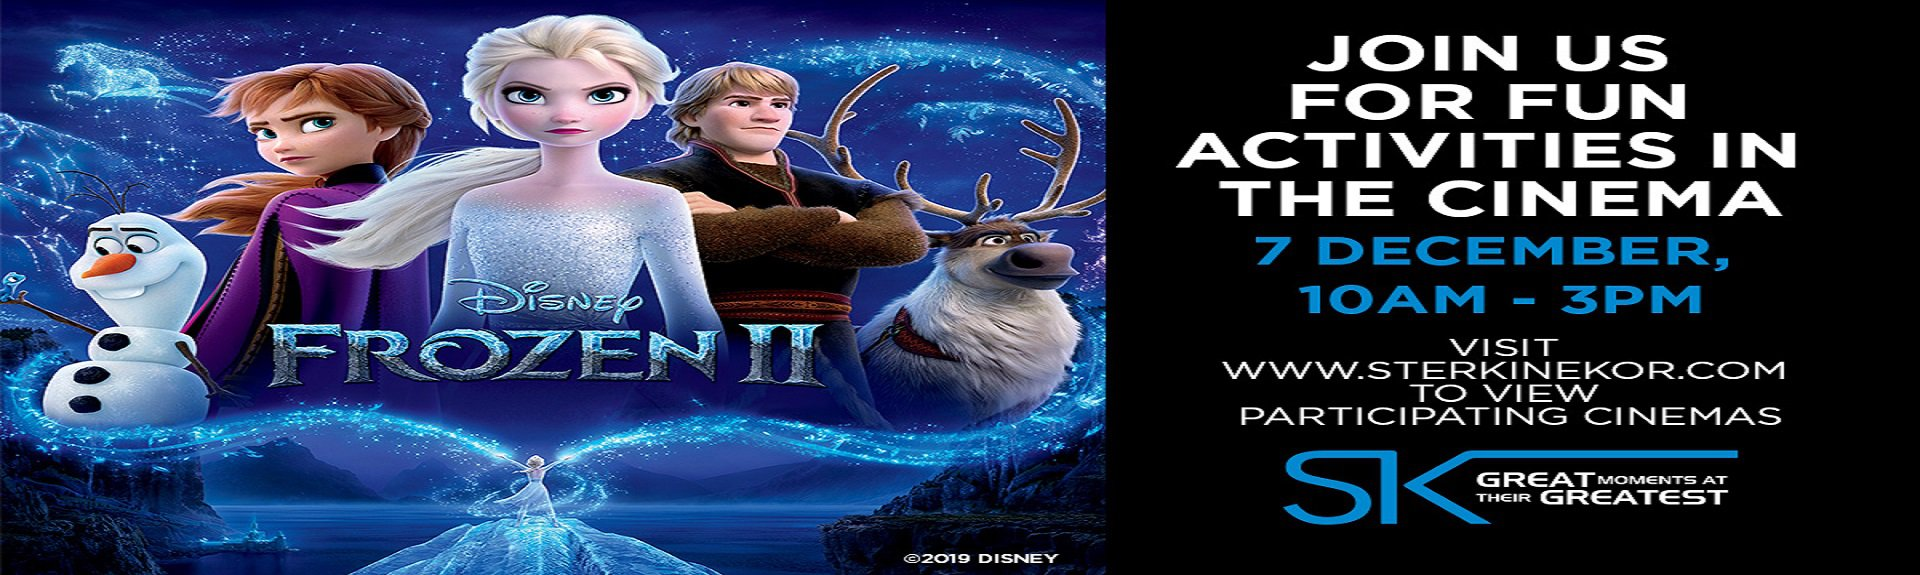 Frozen 2 | Ster Kinekor | Things to do With Kids